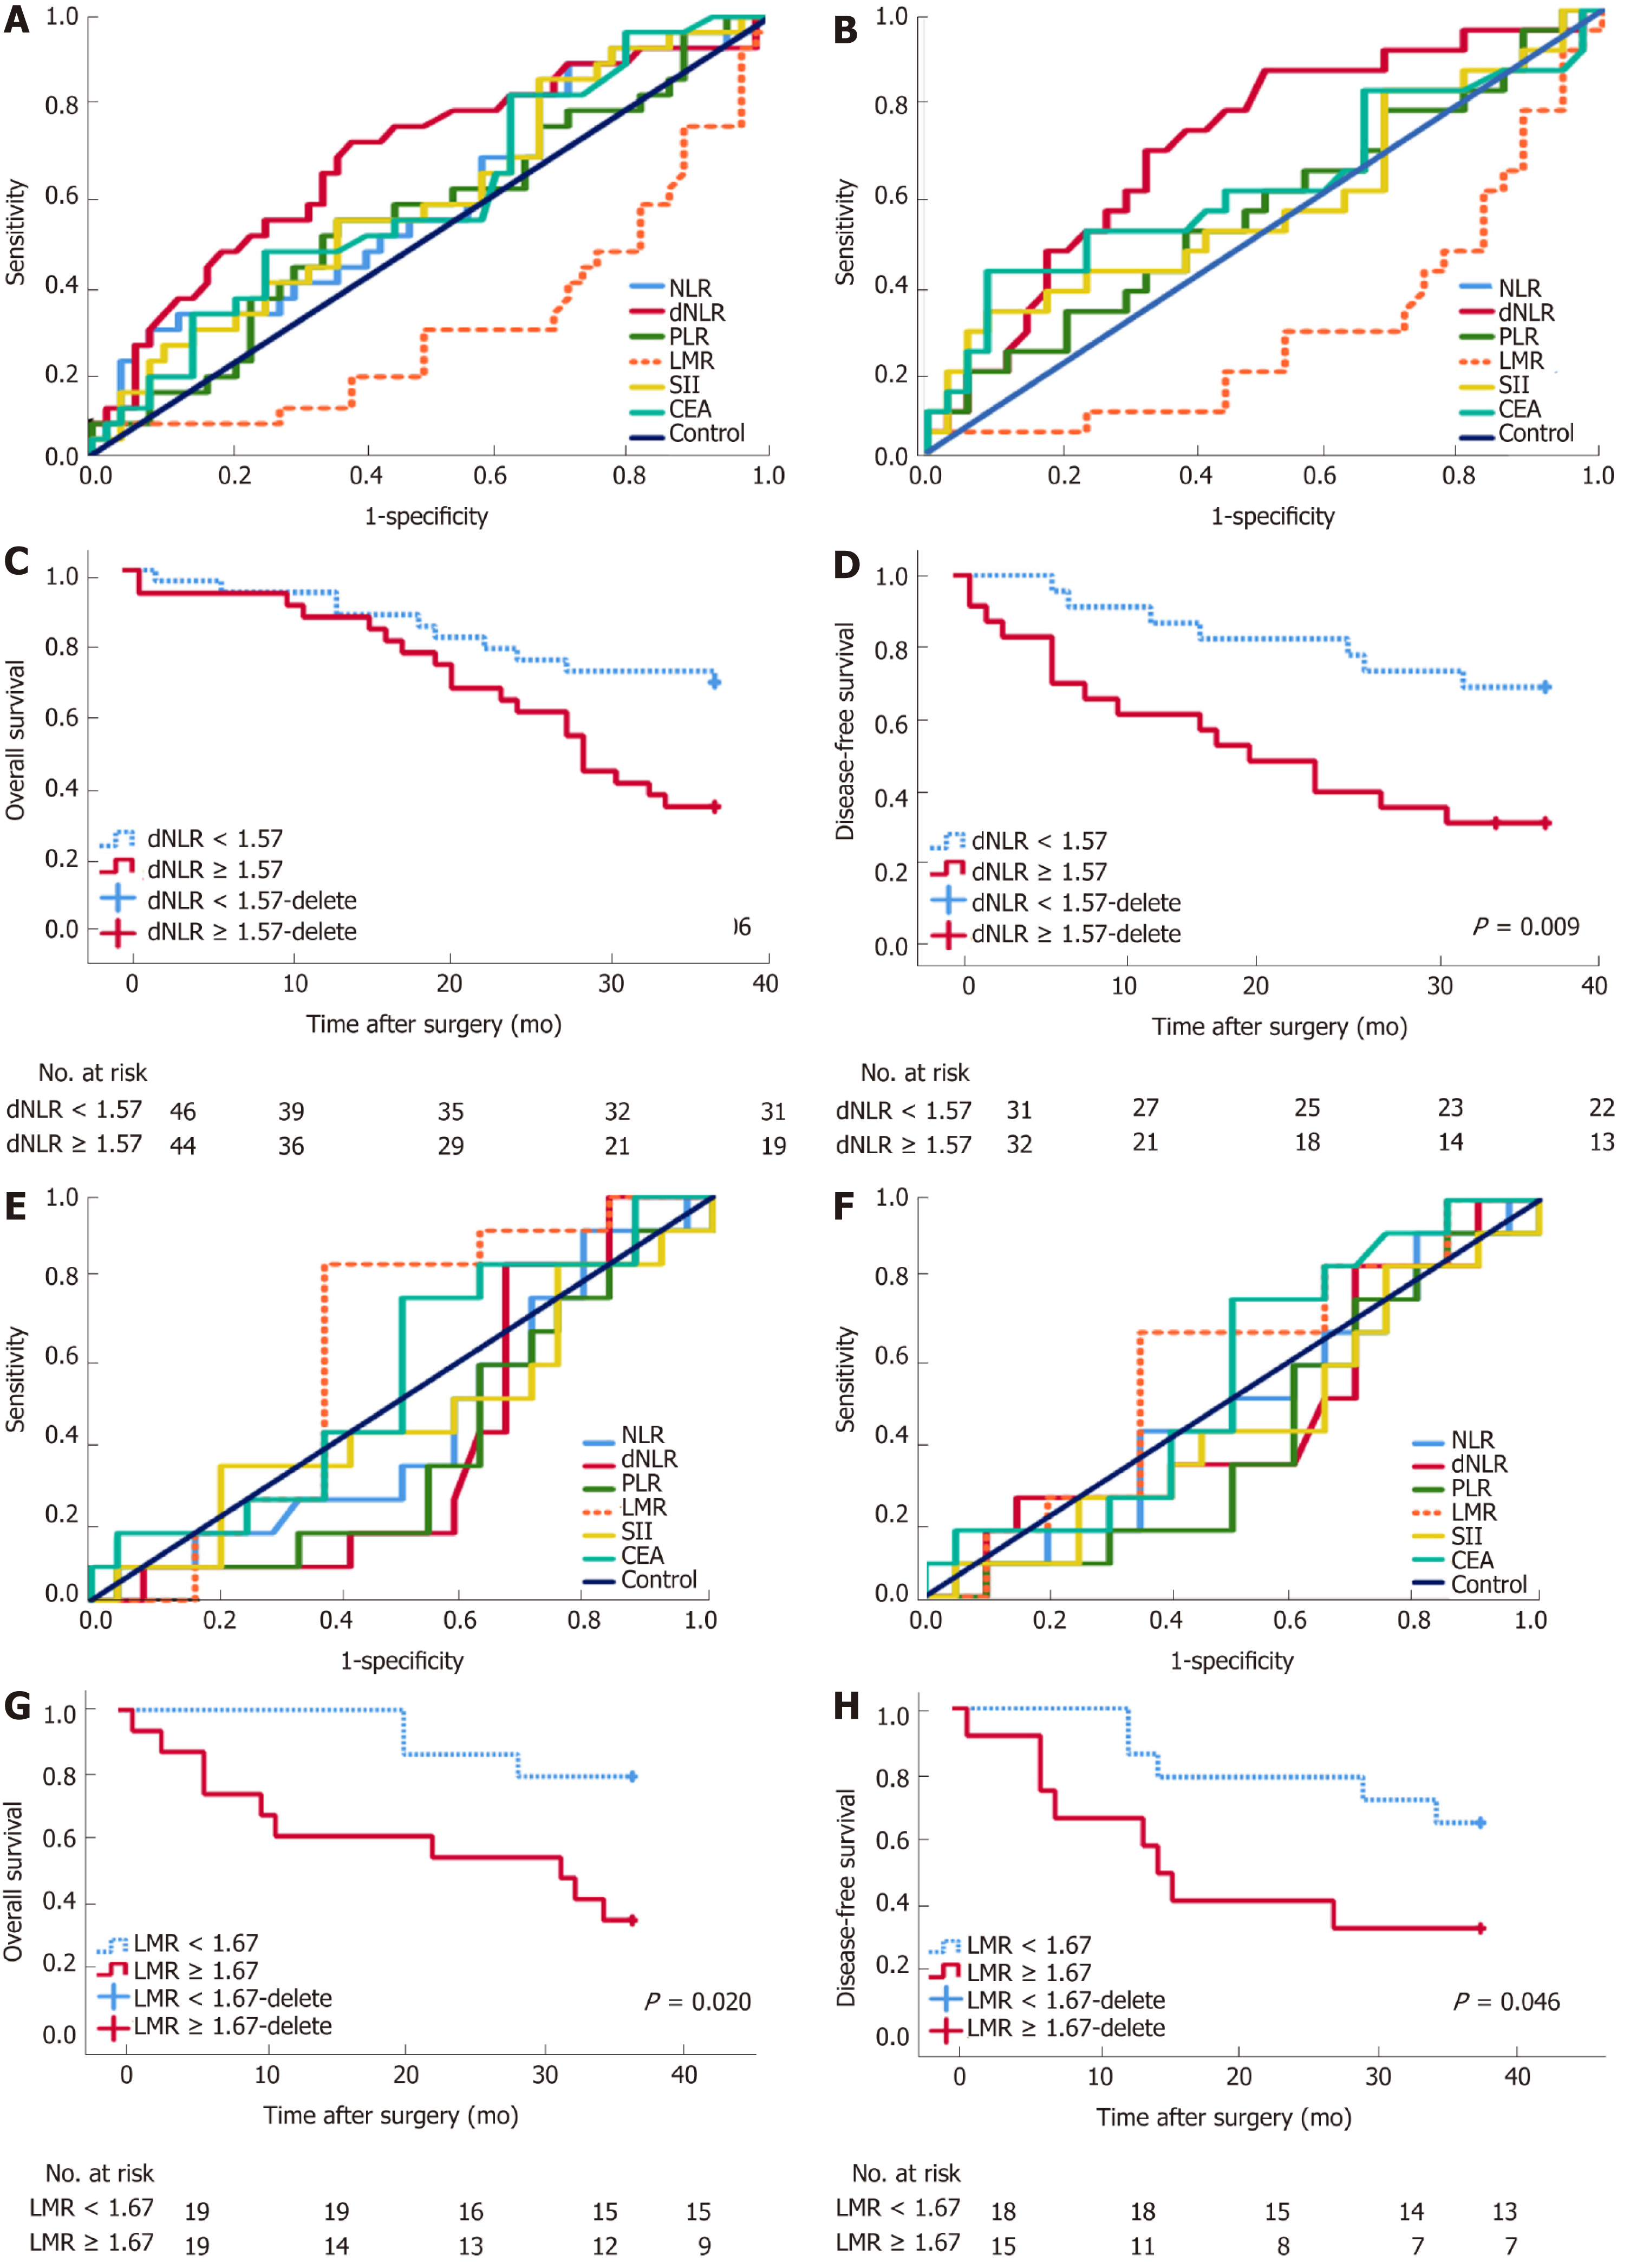 Lymphocyte-to-monocyte ratio effectively predicts survival